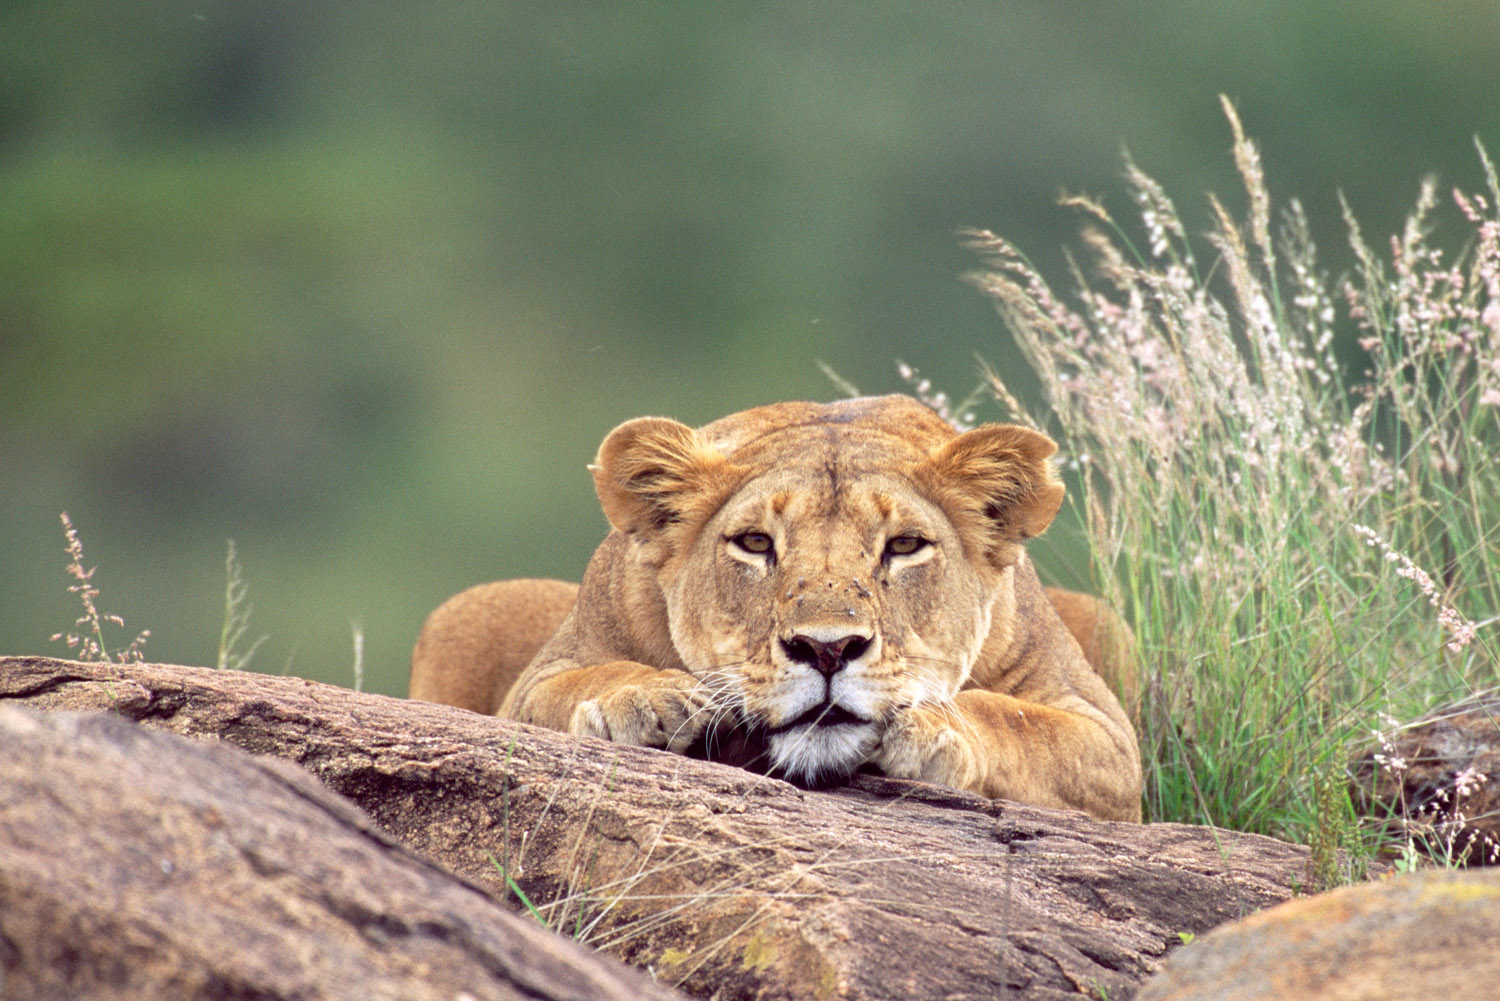 Lioness resting on rocks, Laikipia, Kenya